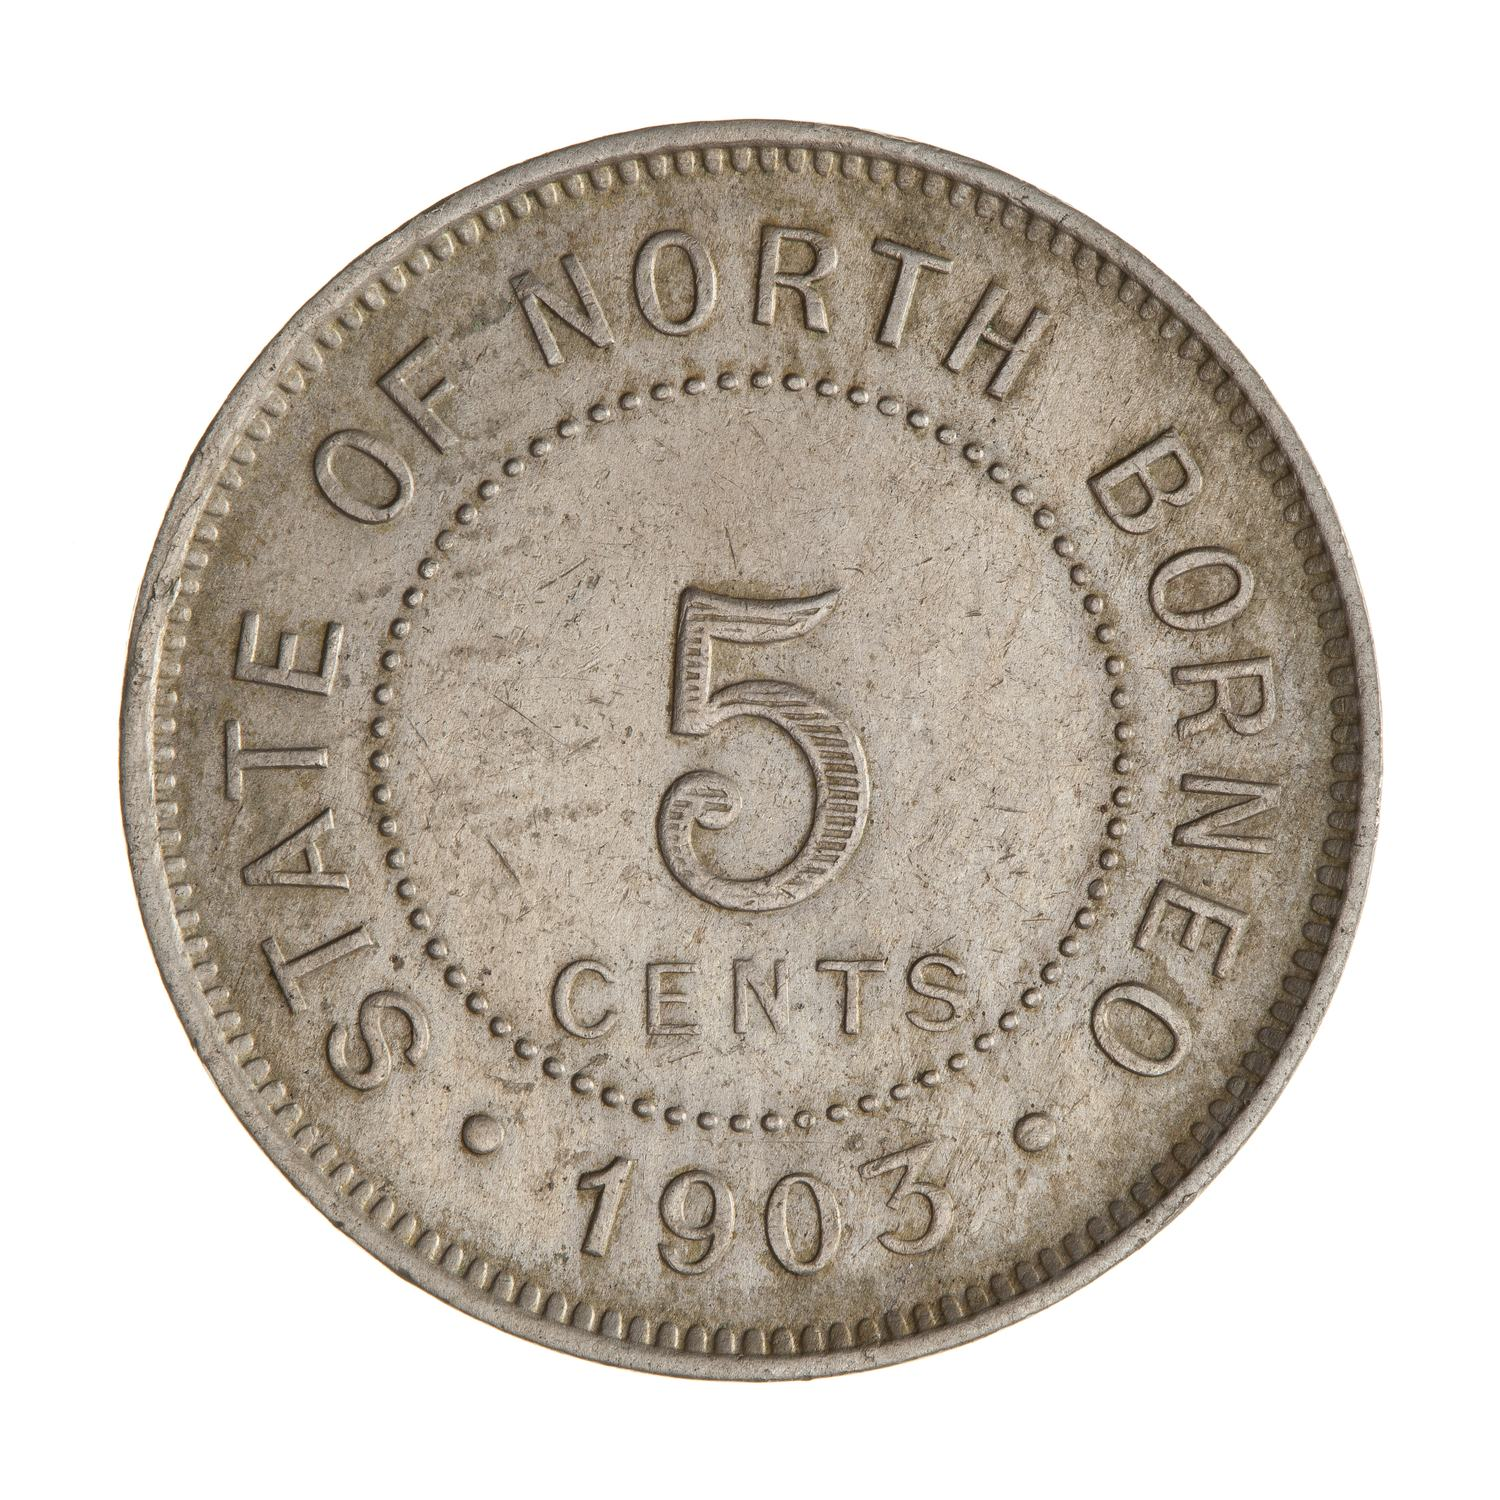 Five Cents 1903: Photo Coin - 5 Cents, North Borneo, 1903